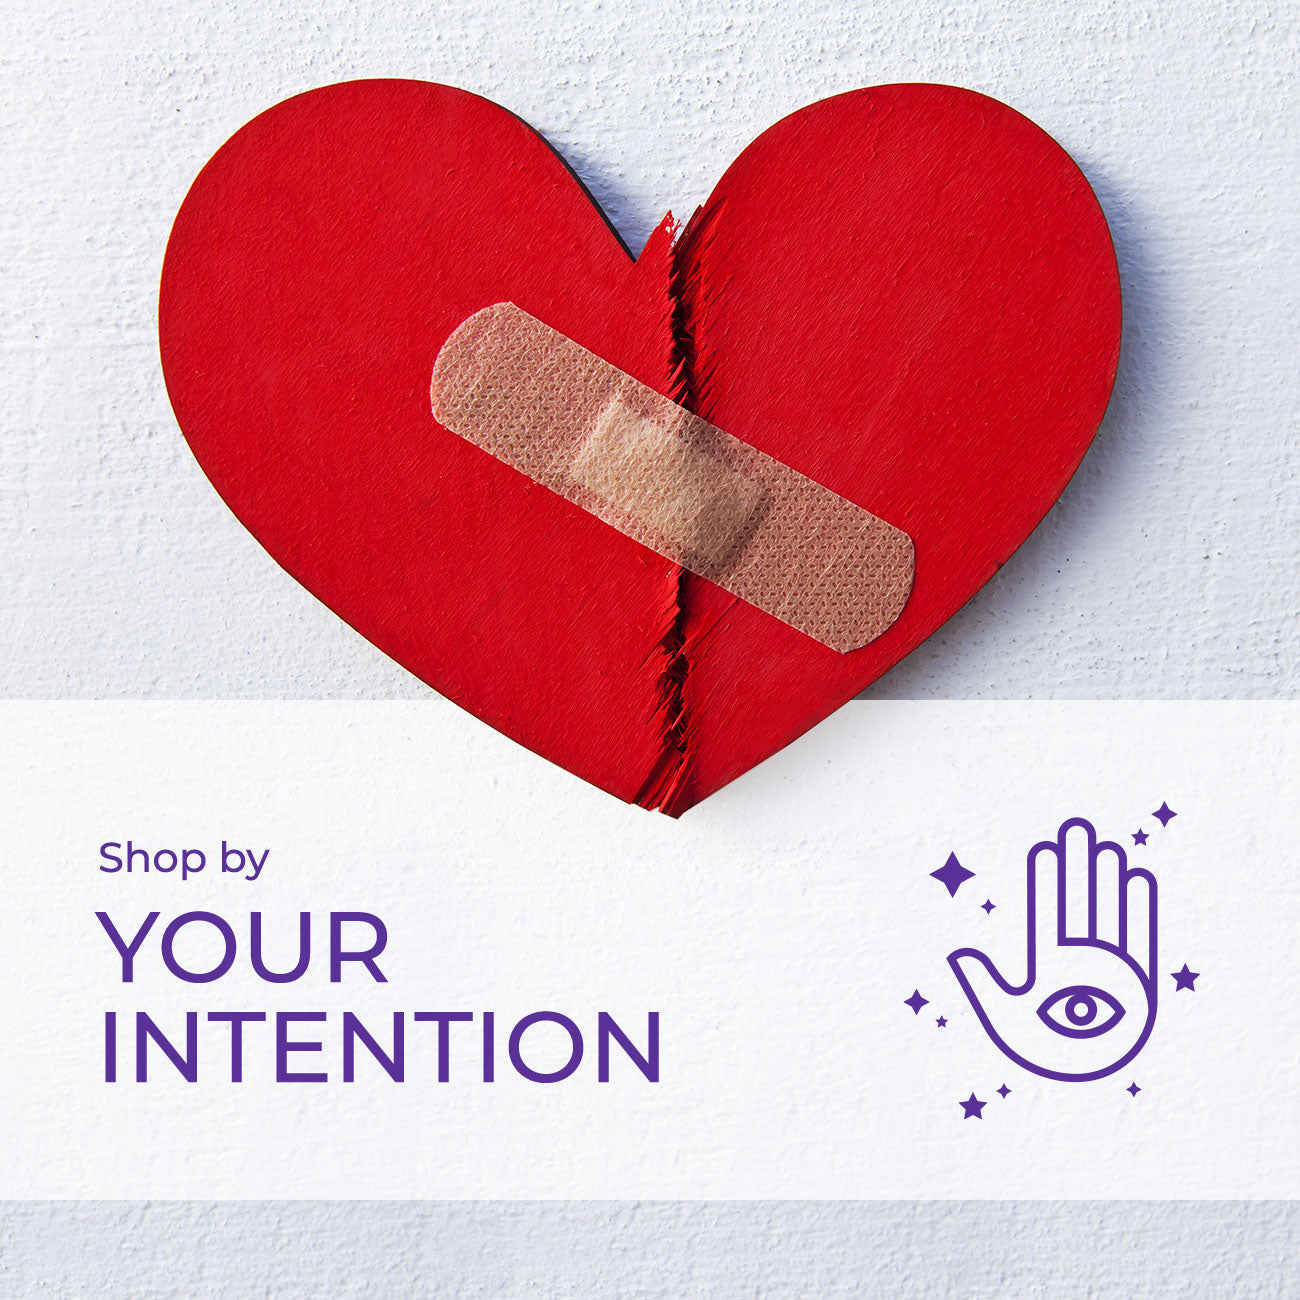 Shop by Intention